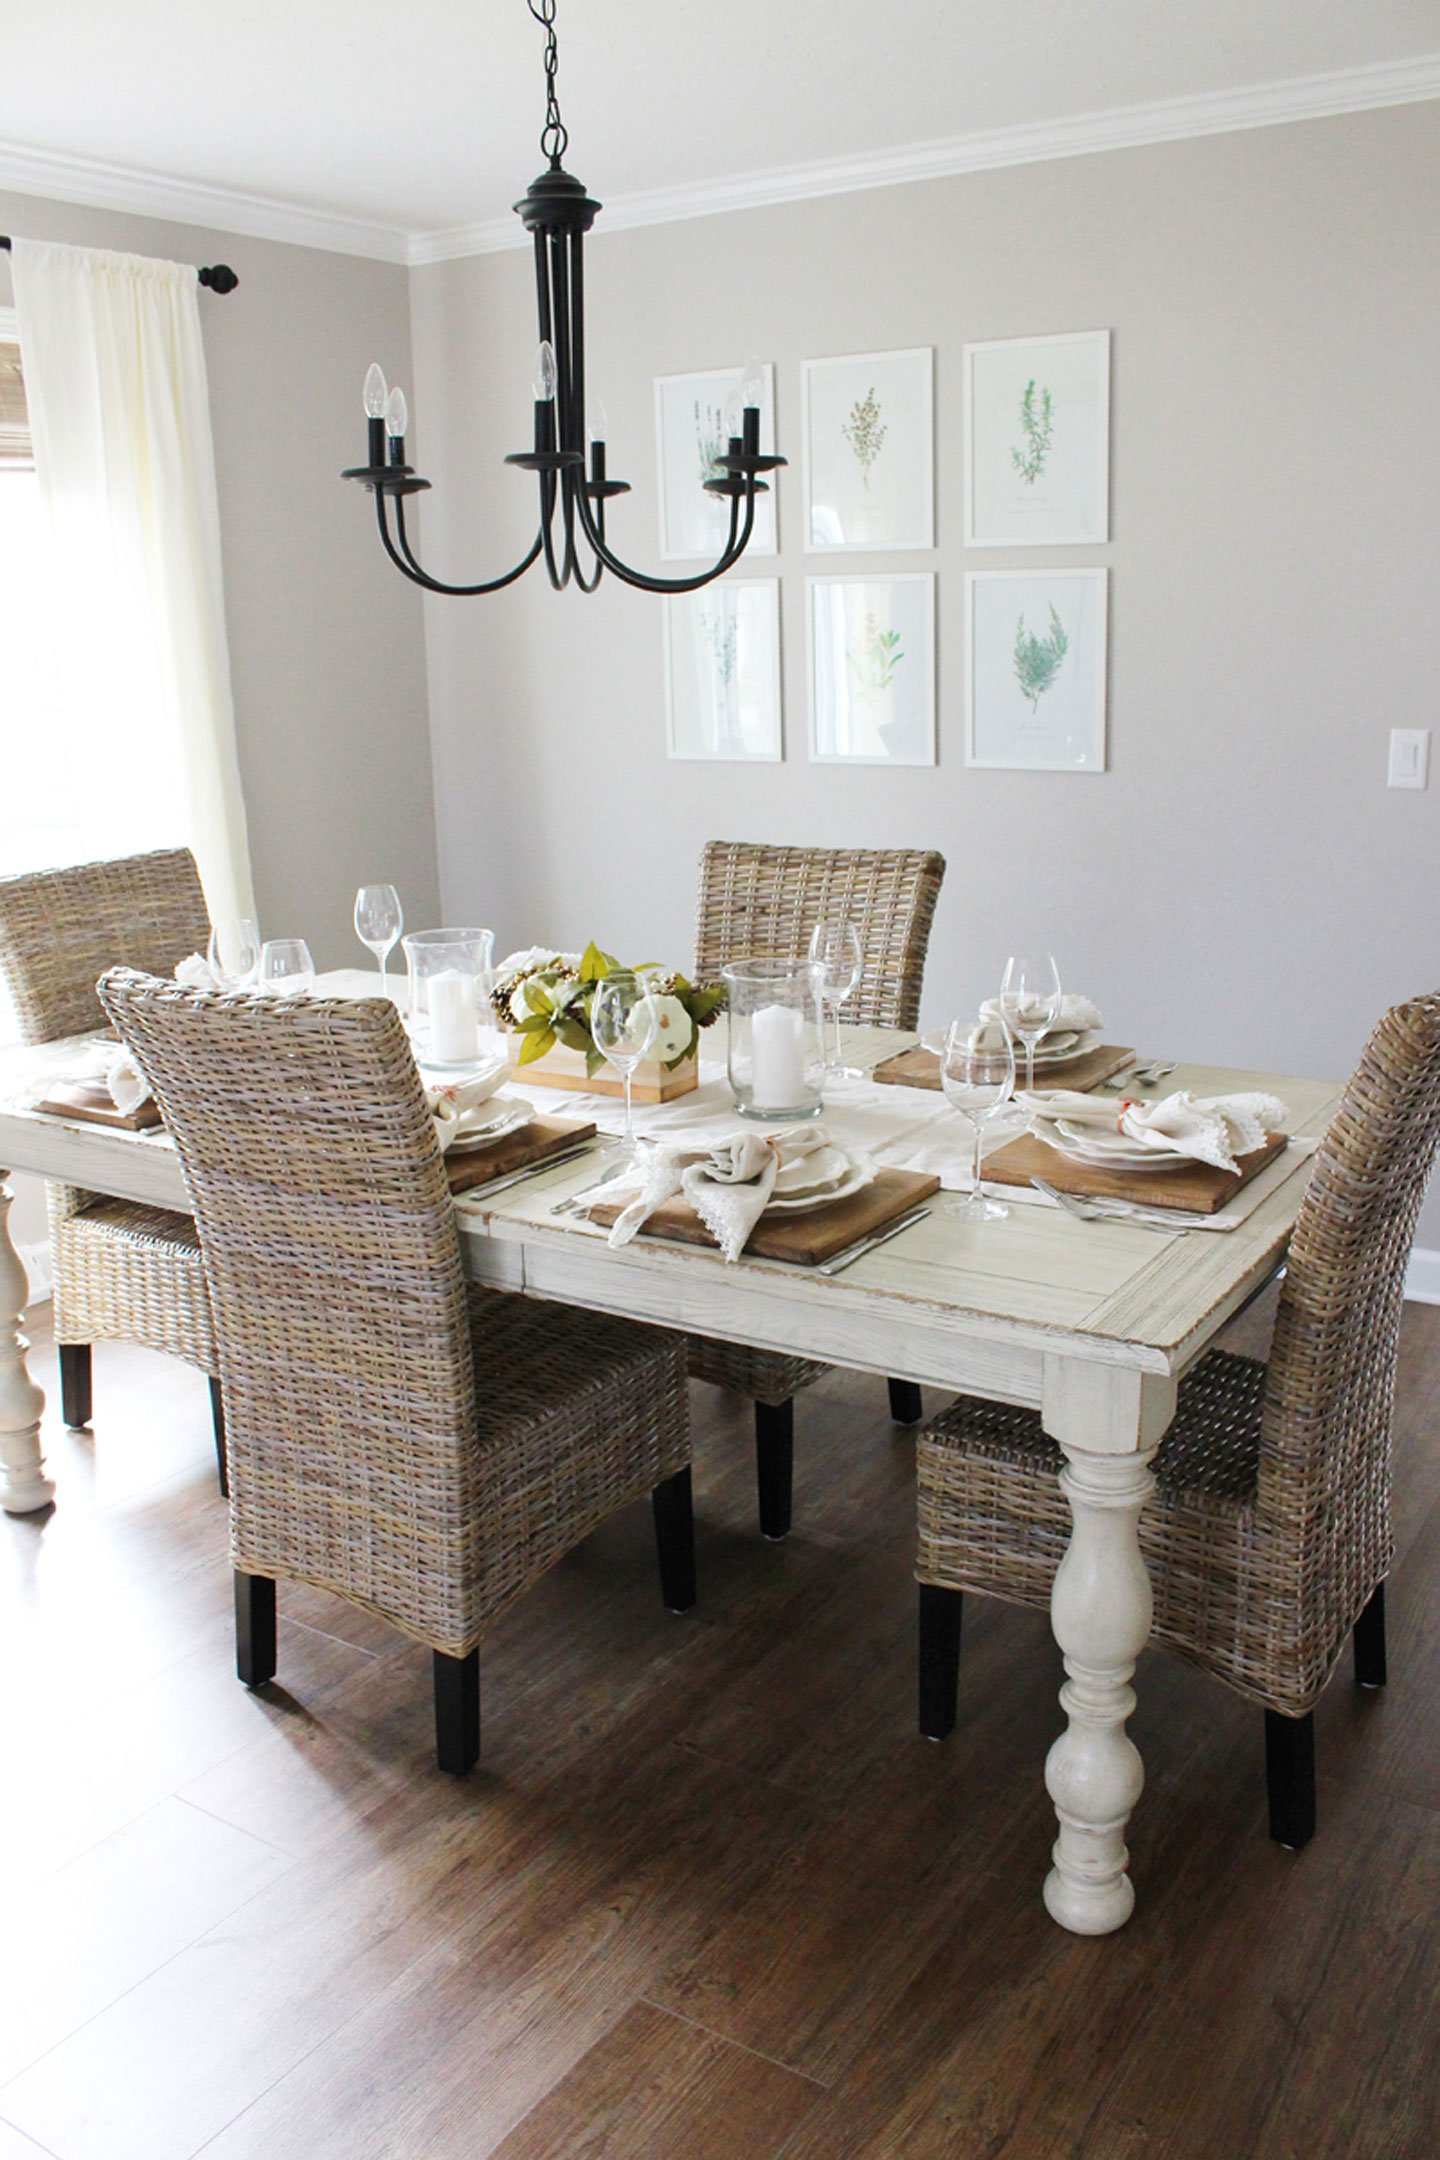 house project plans 2020 - neutral farmhouse-inspired dining room - what karly said